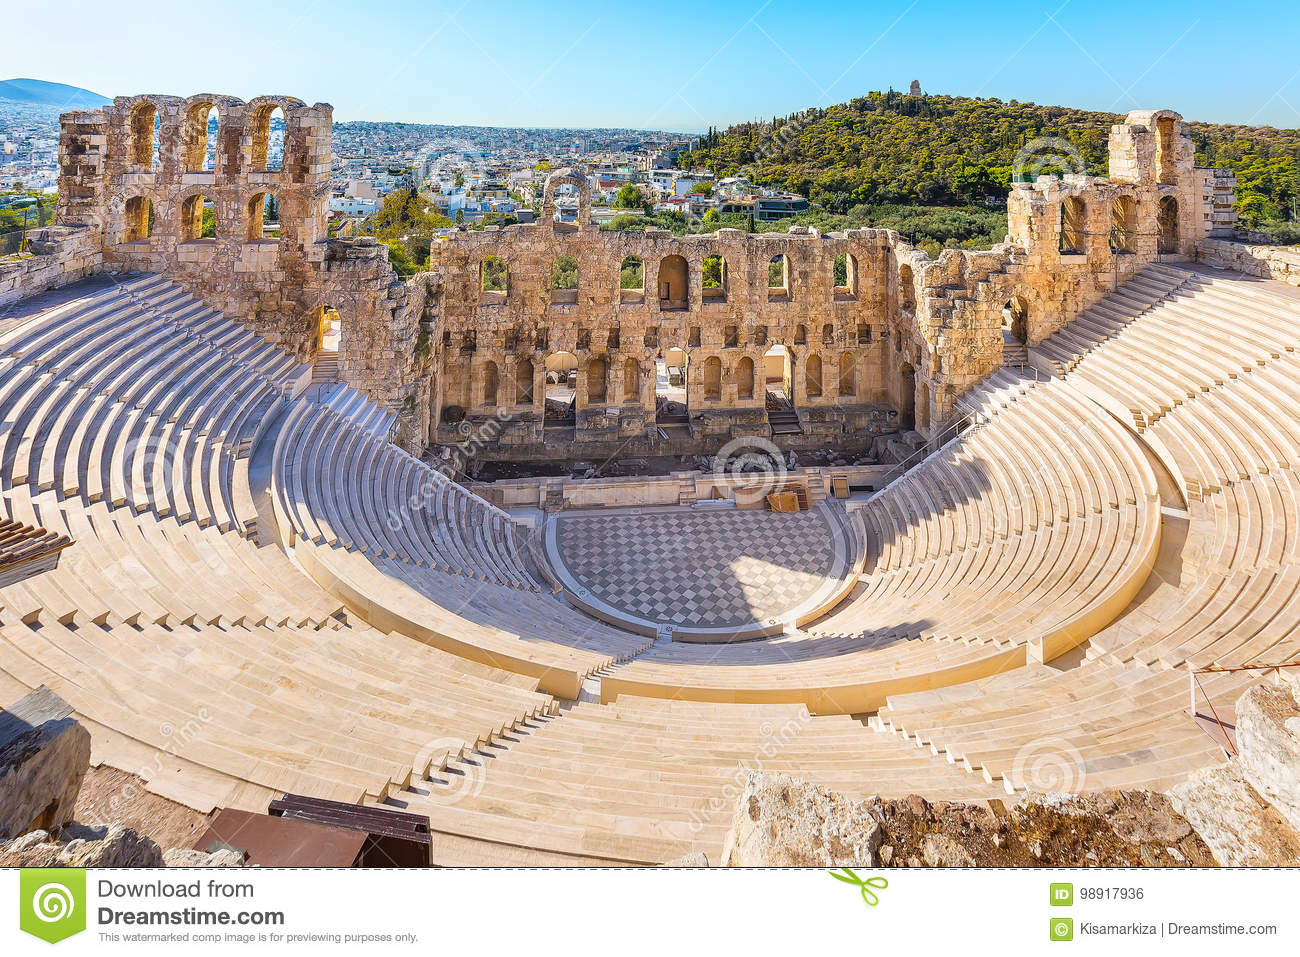 Amphitheater Of Acropolis In Athens Greece Stock Photo Image Of Historical Akropolis 98917936